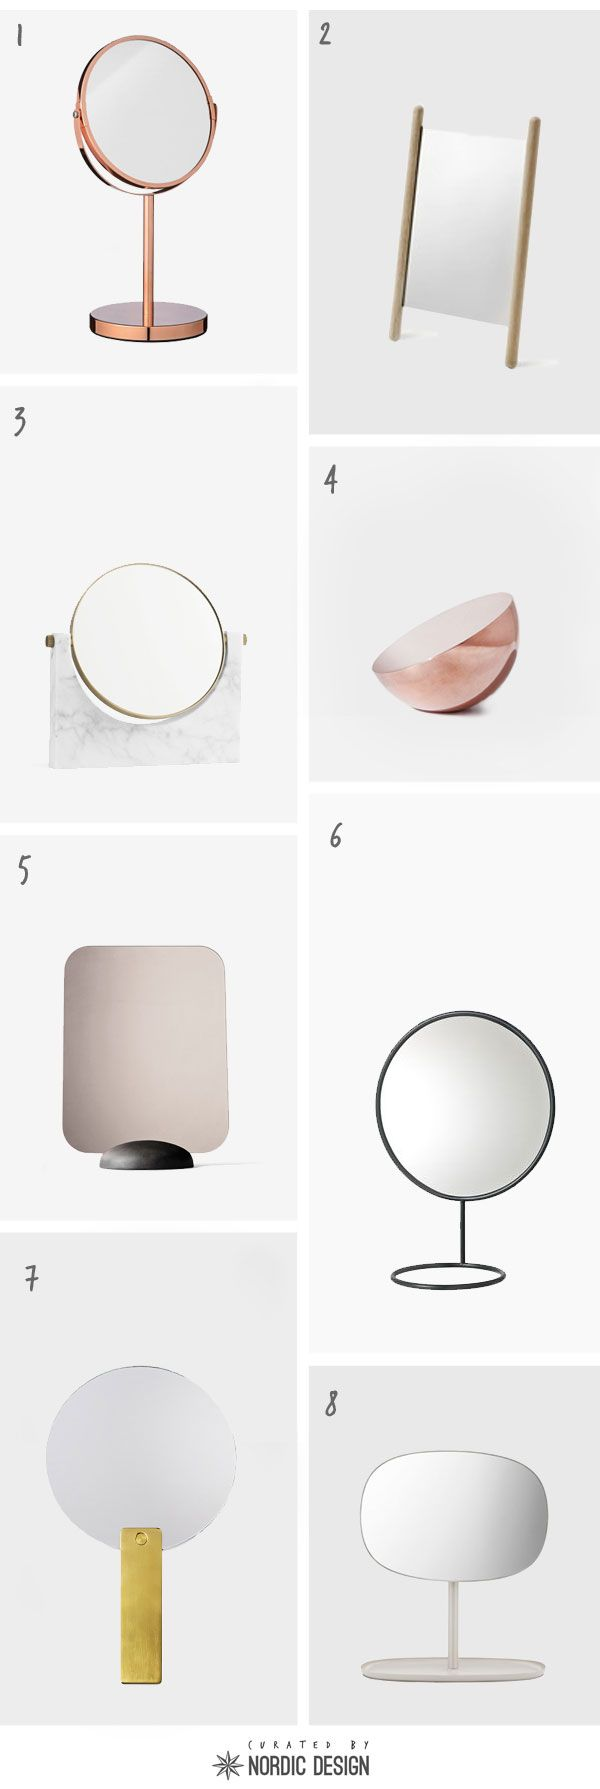 8 Beautiful Table Mirrors from Scandinavian Designers & Brands